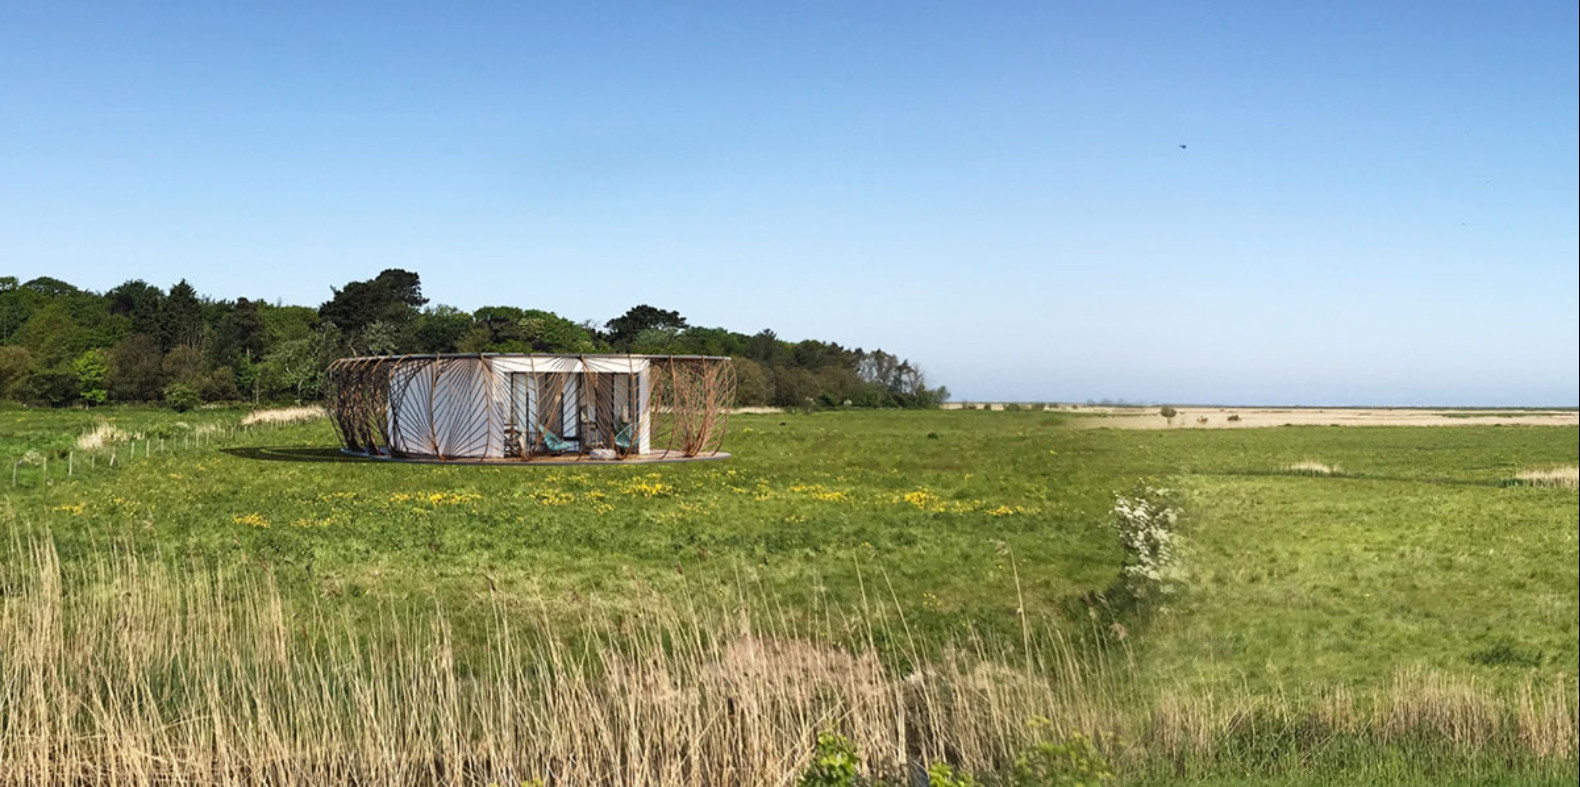 The Lantern Portable Home by Emulsion Architecture «     Inhabitat – Green Design, Innovation, Architecture, Green Building